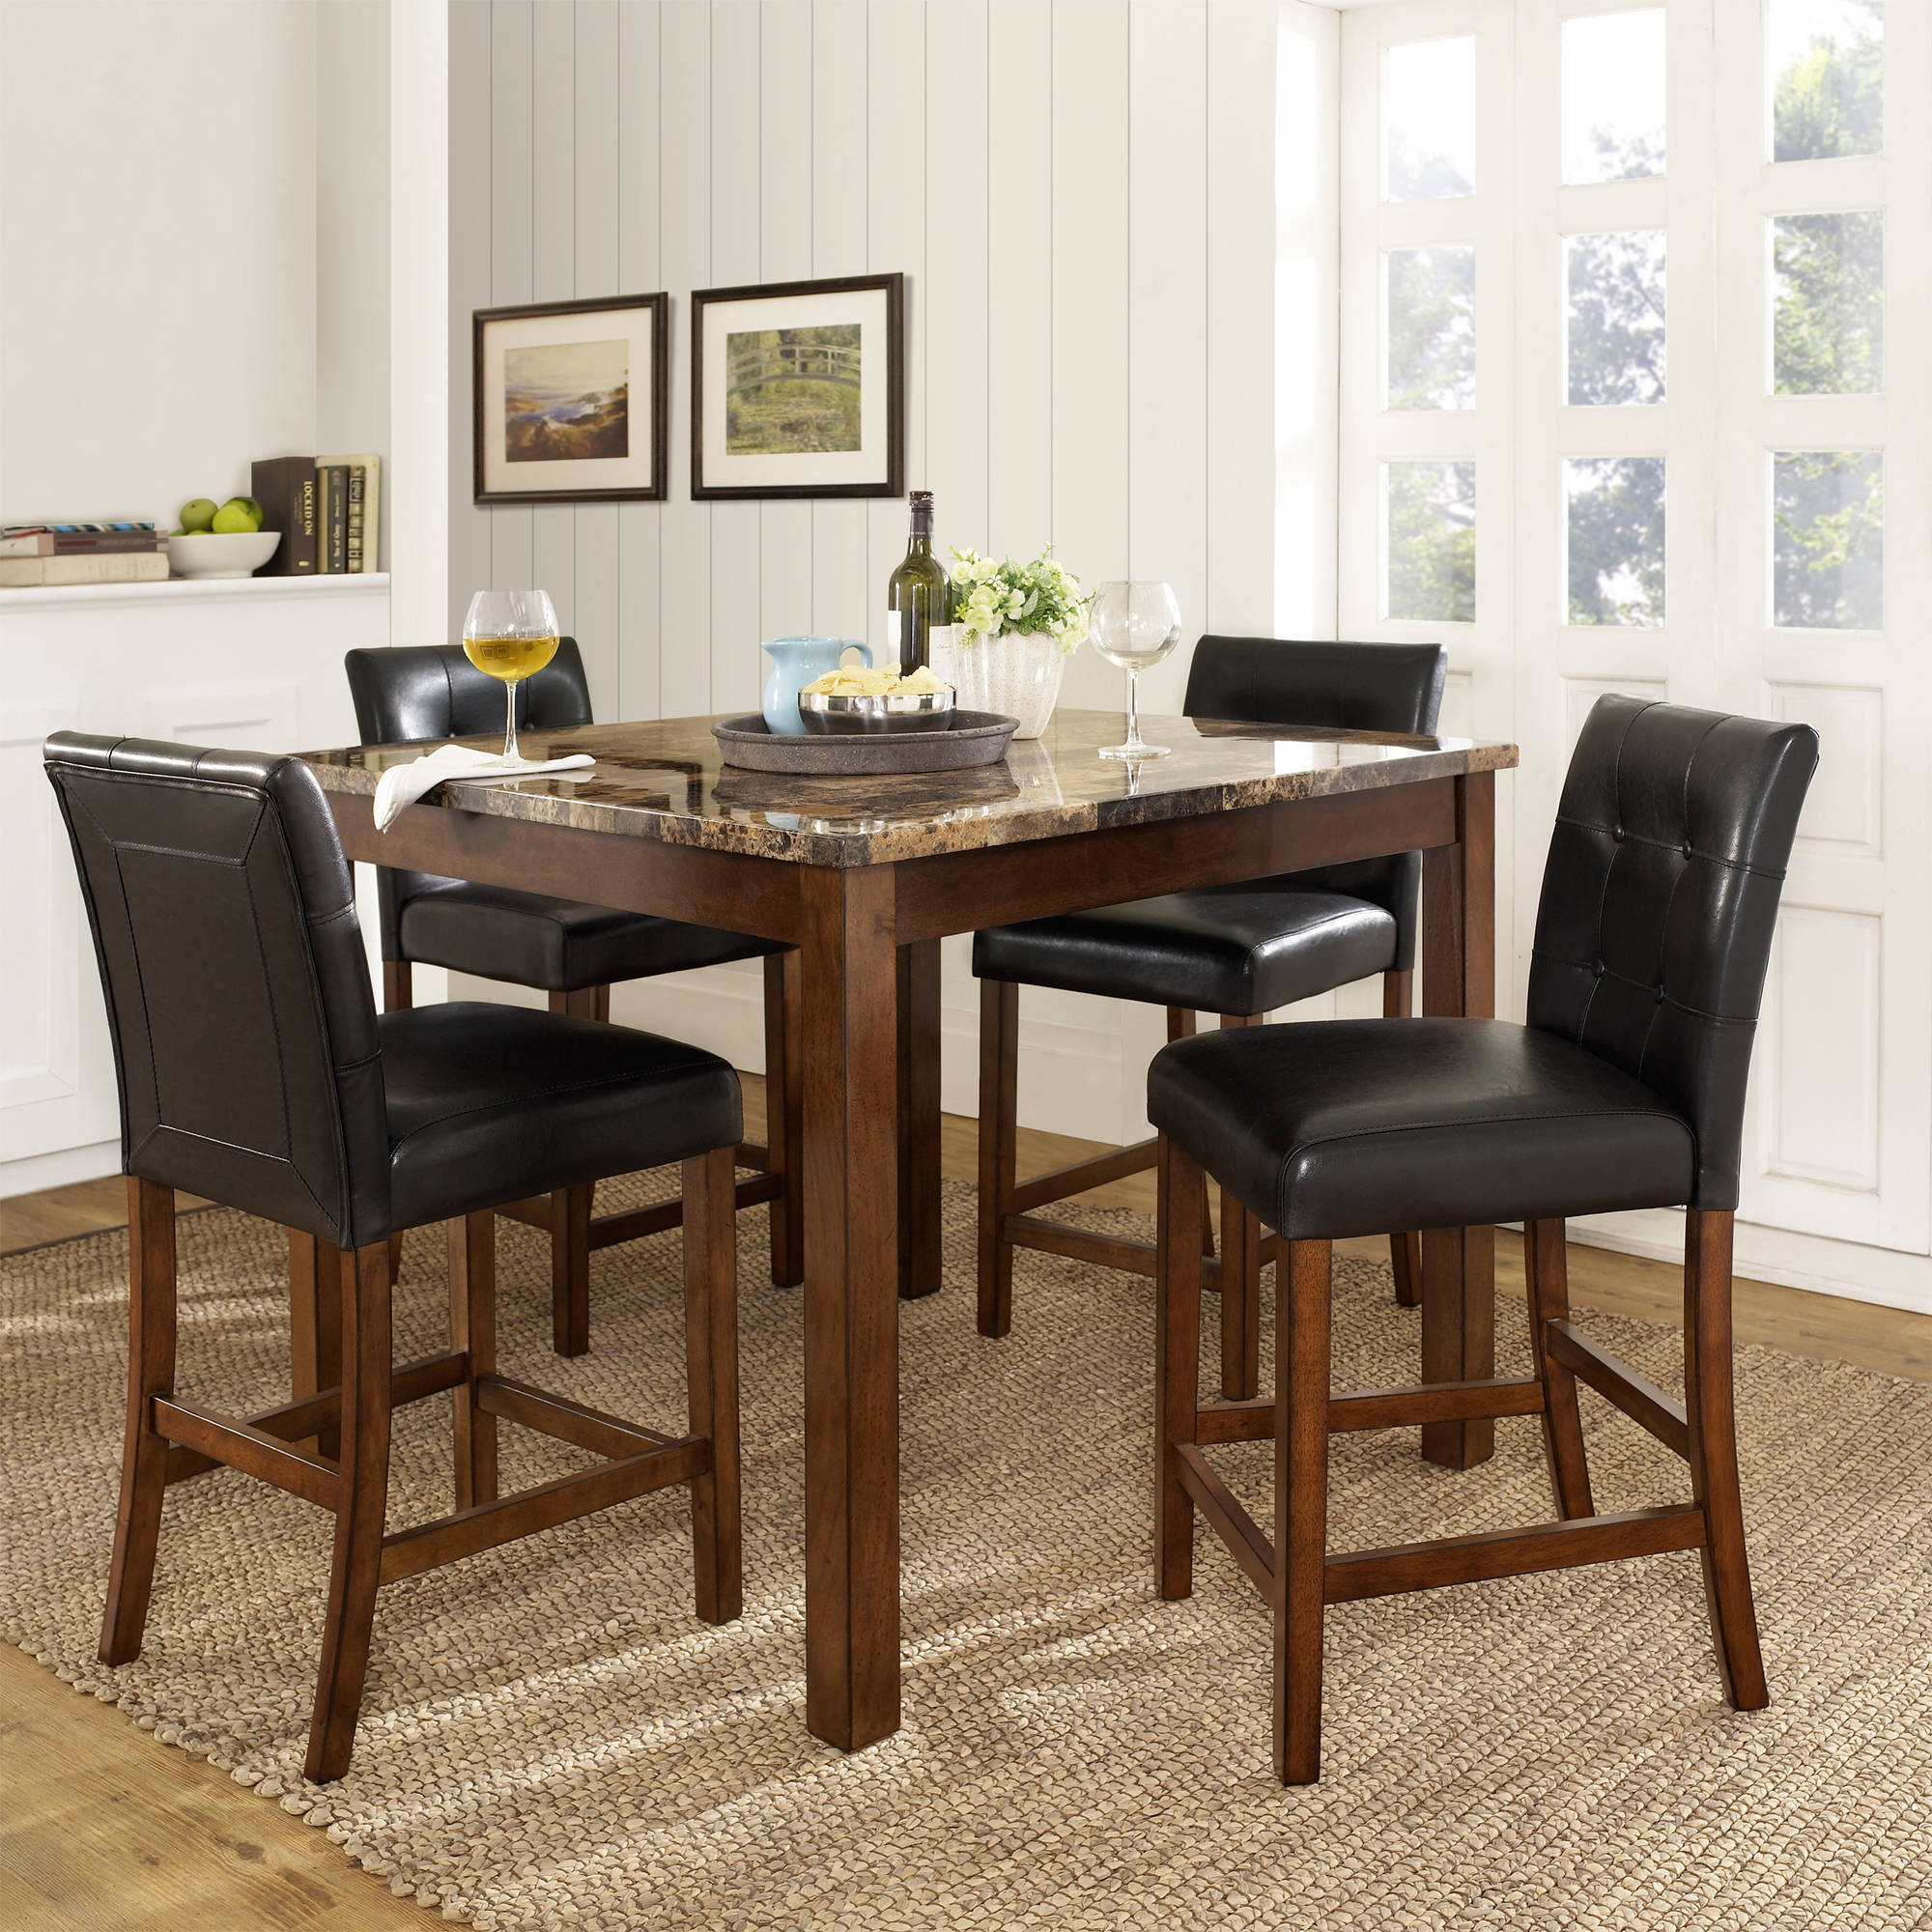 Dining Room Table Sets Fair Kitchen & Dining Furniture  Walmart Inspiration Design